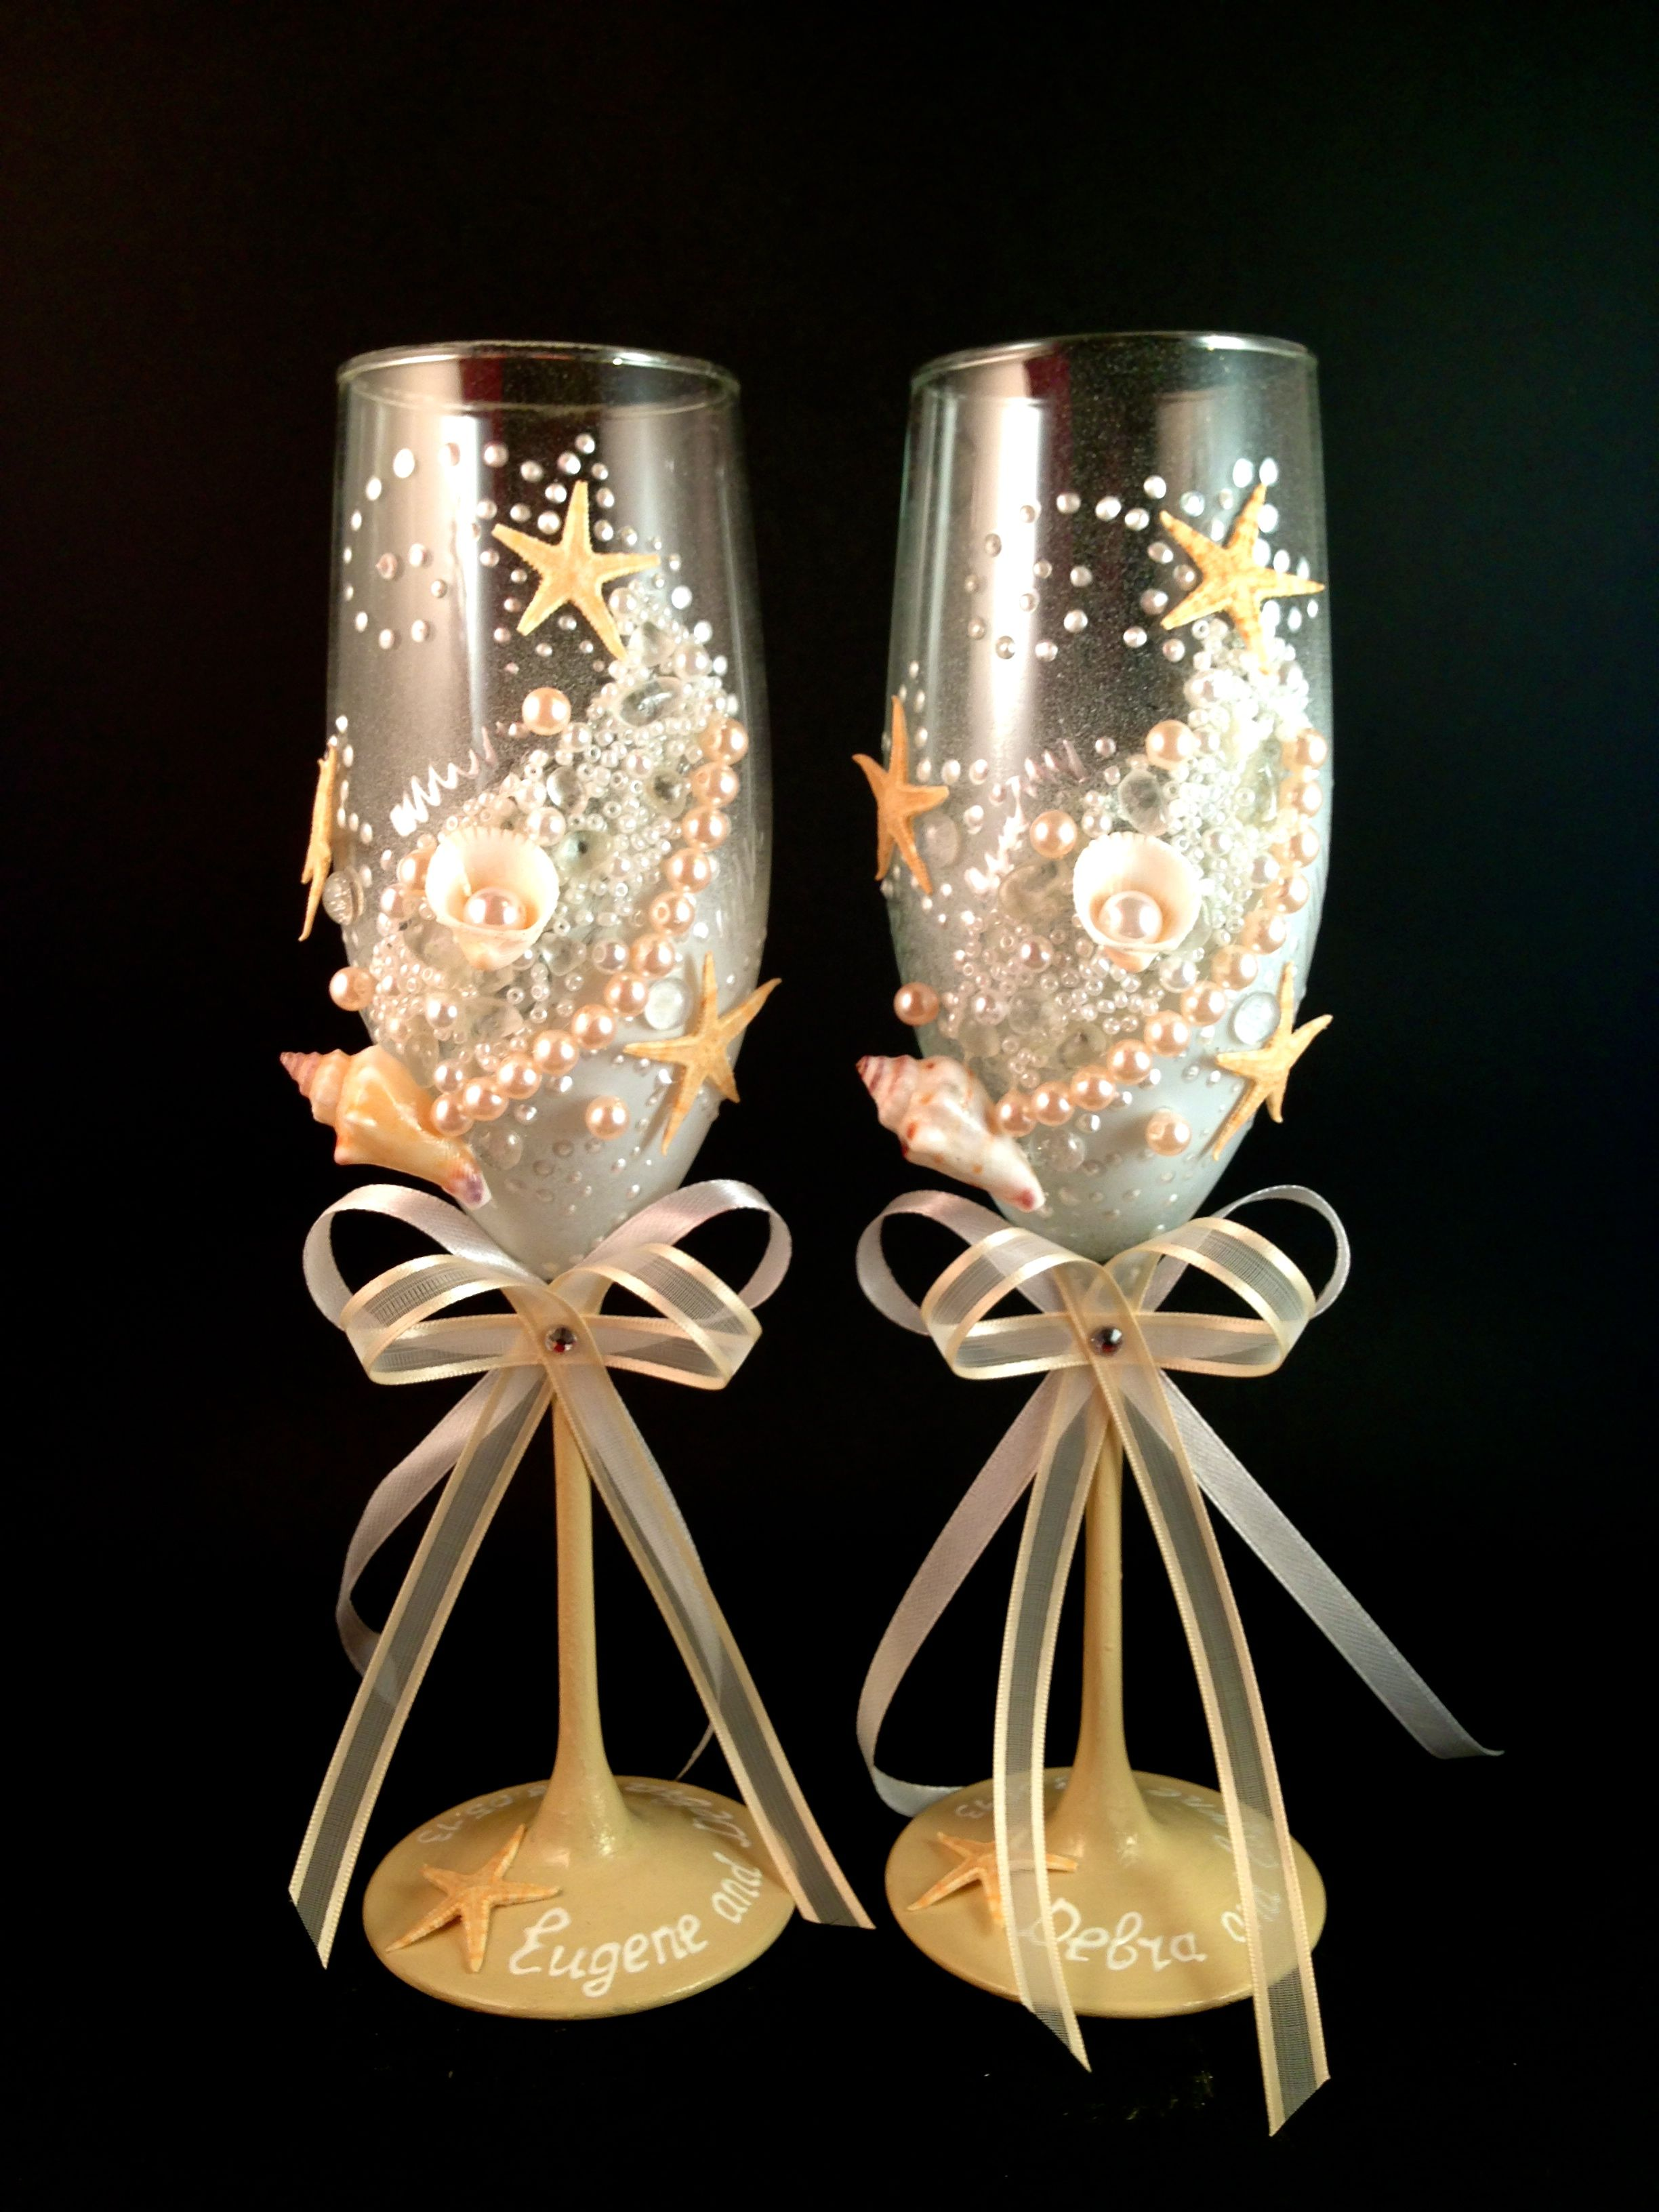 custom hand decorated wedding champagne glasses decorated wedding glasses. Black Bedroom Furniture Sets. Home Design Ideas